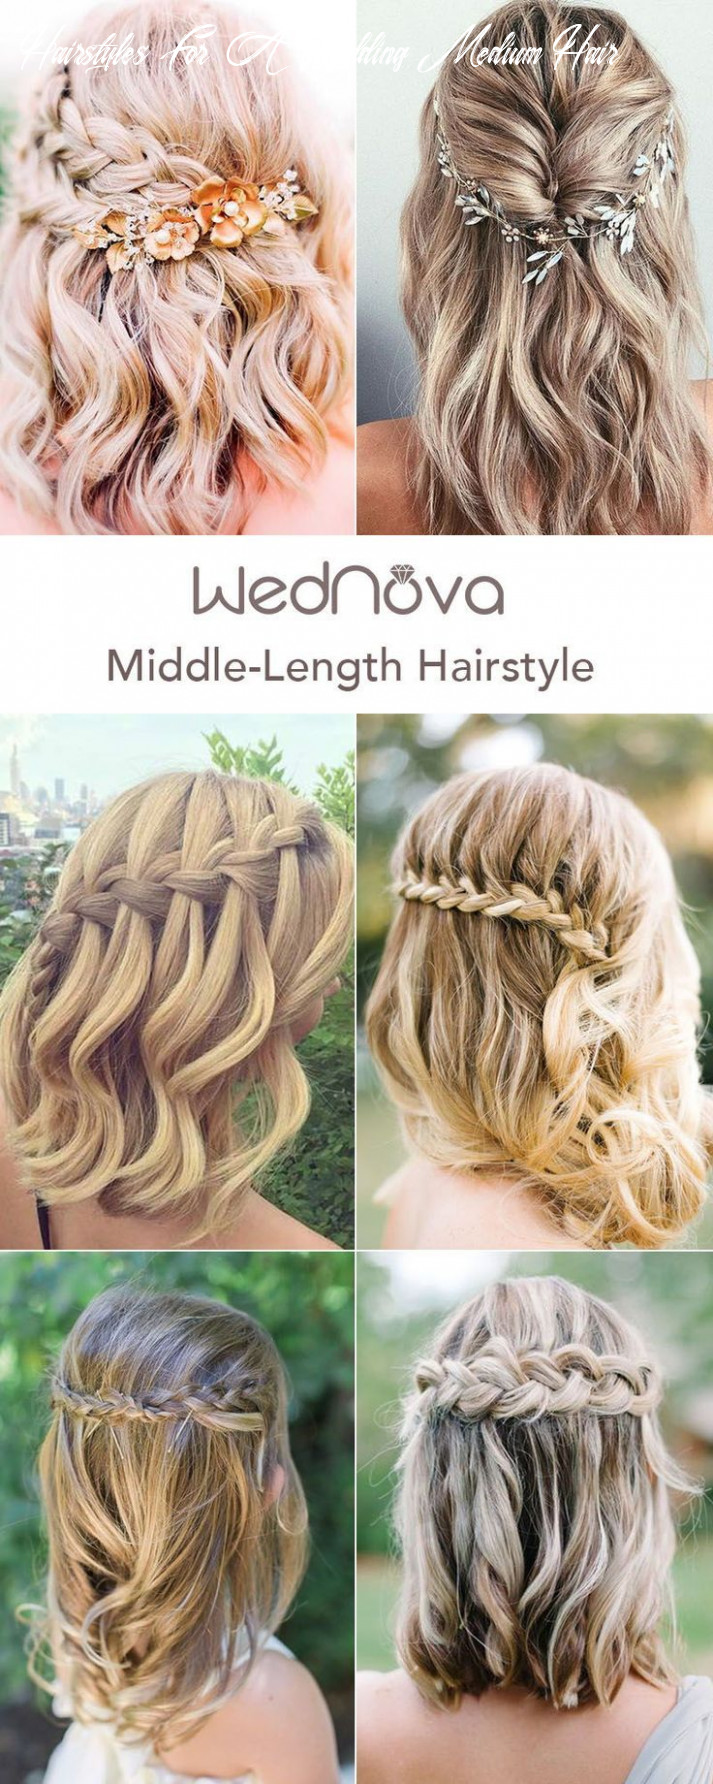 12 easy wedding hairstyles best guide for your bridesmaids in 12